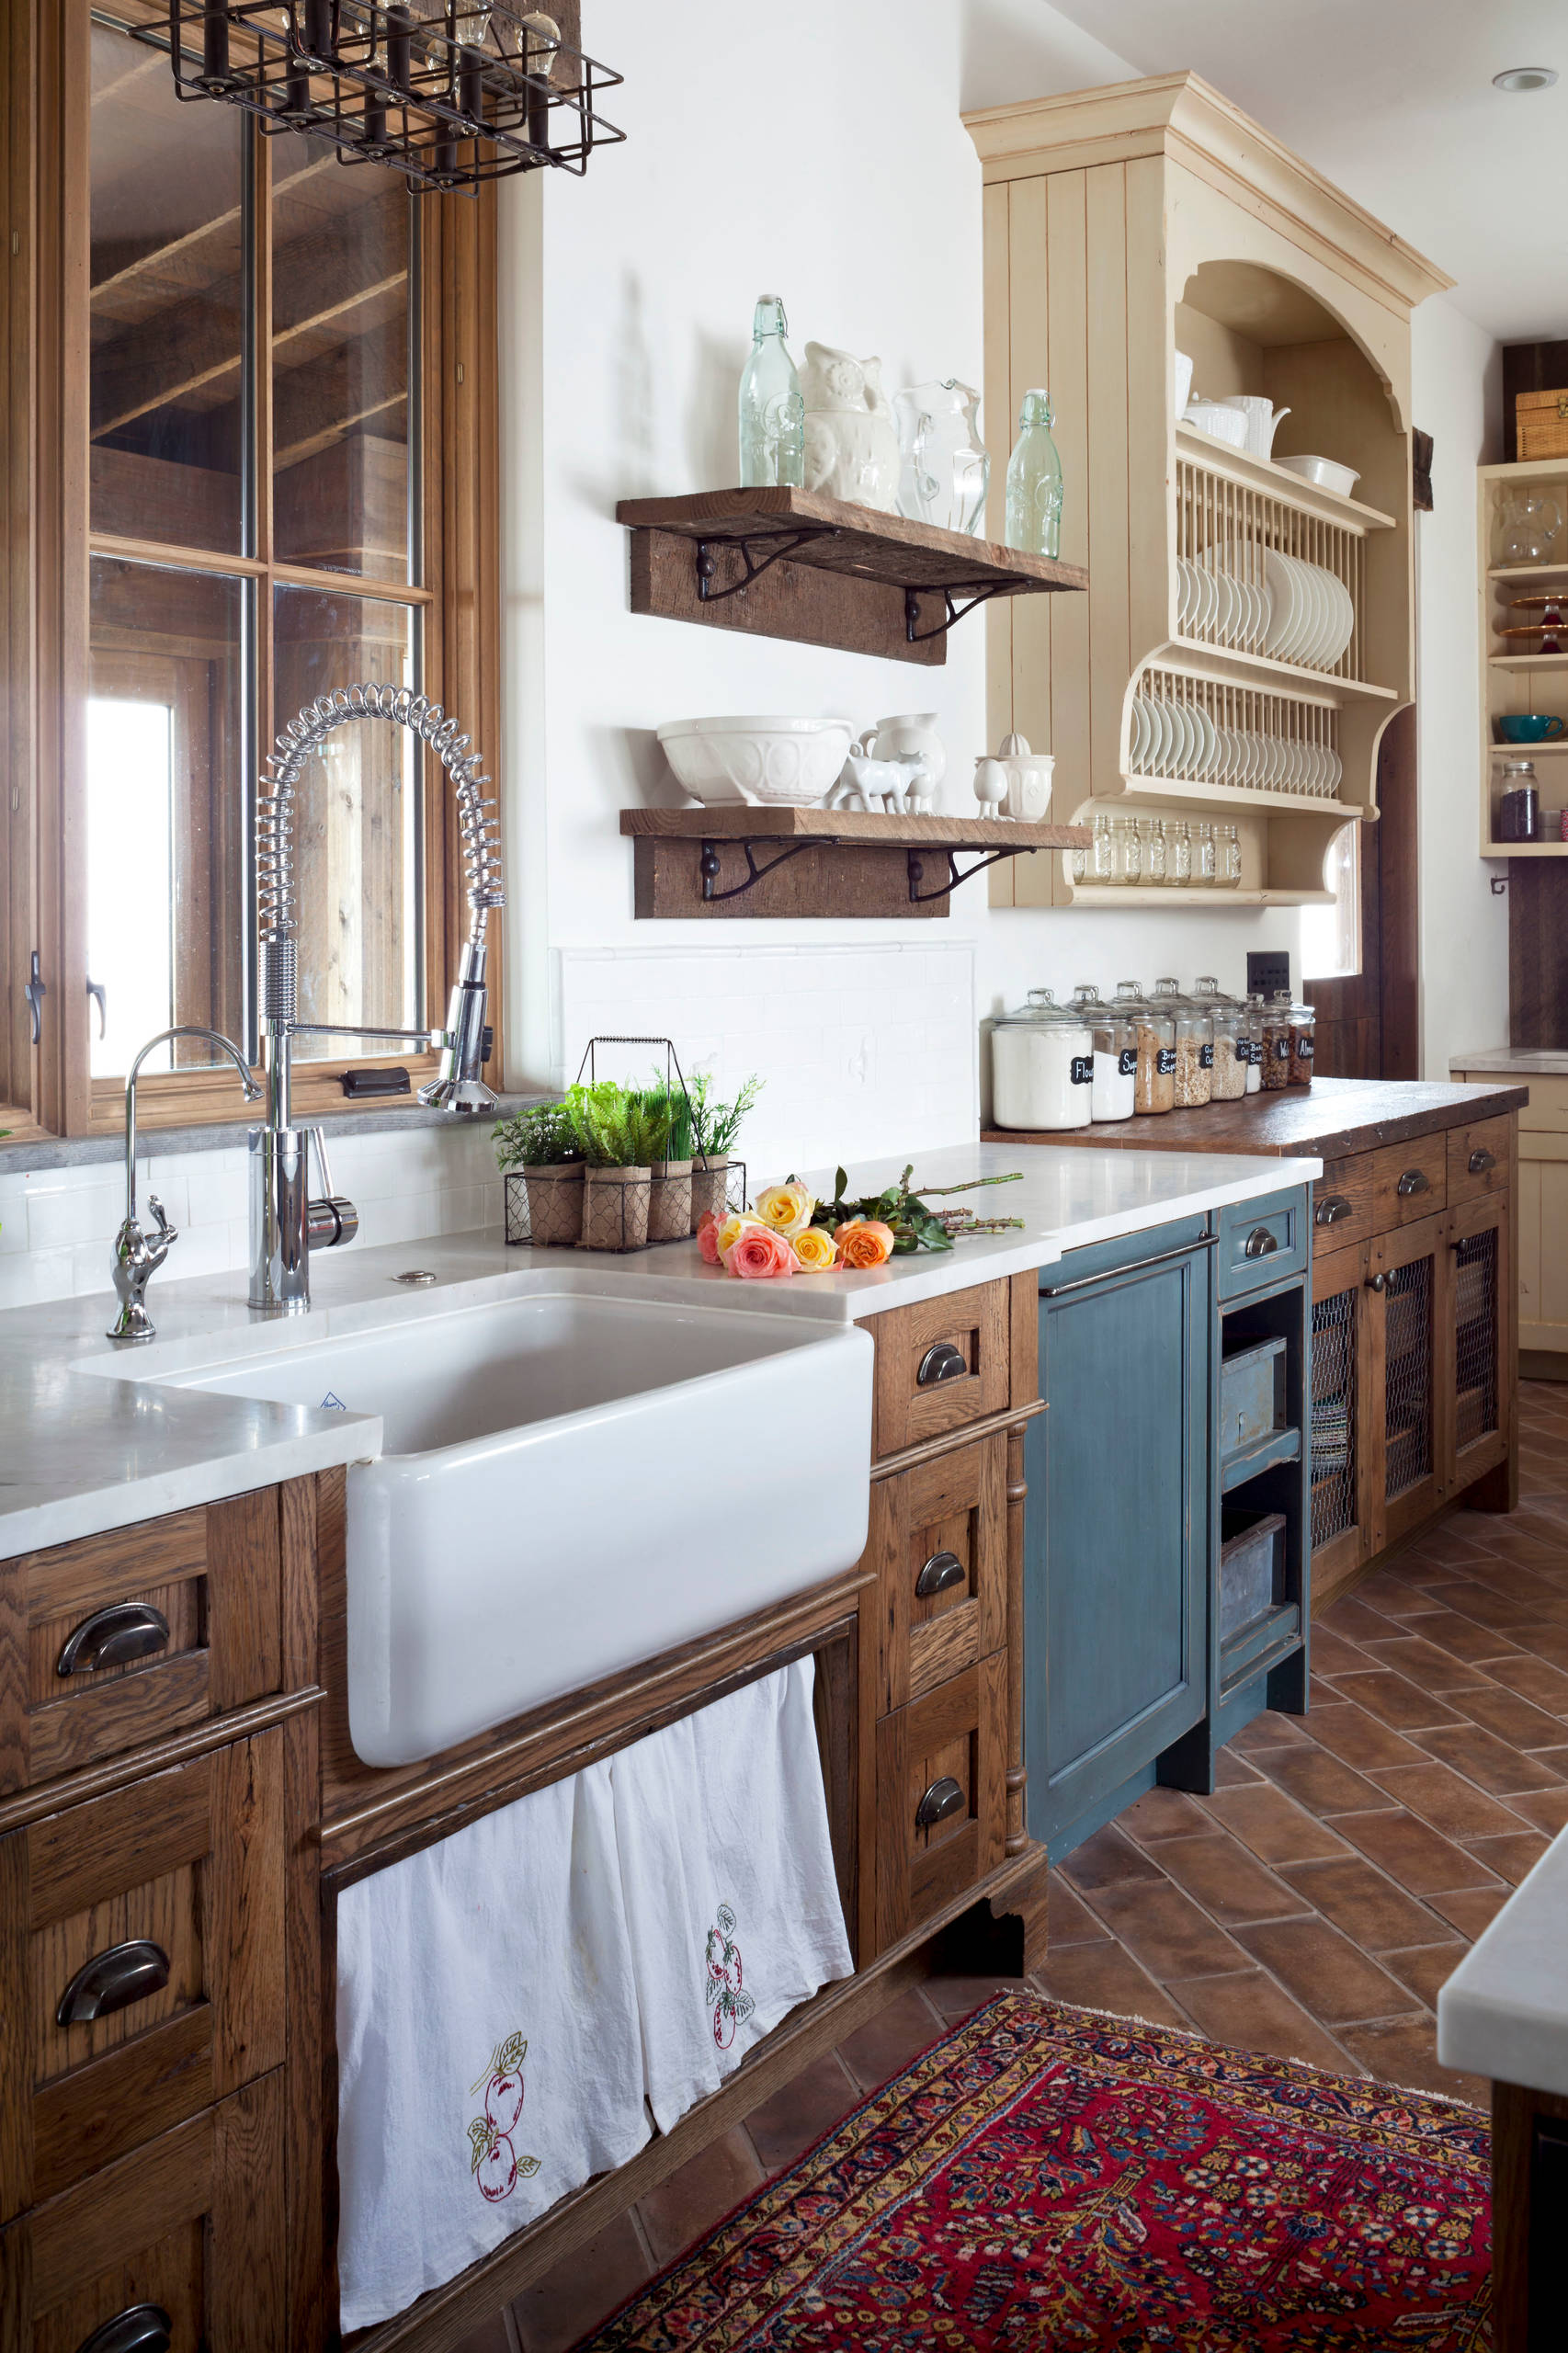 75 Beautiful Farmhouse Kitchen With Dark Wood Cabinets Pictures Ideas December 2020 Houzz